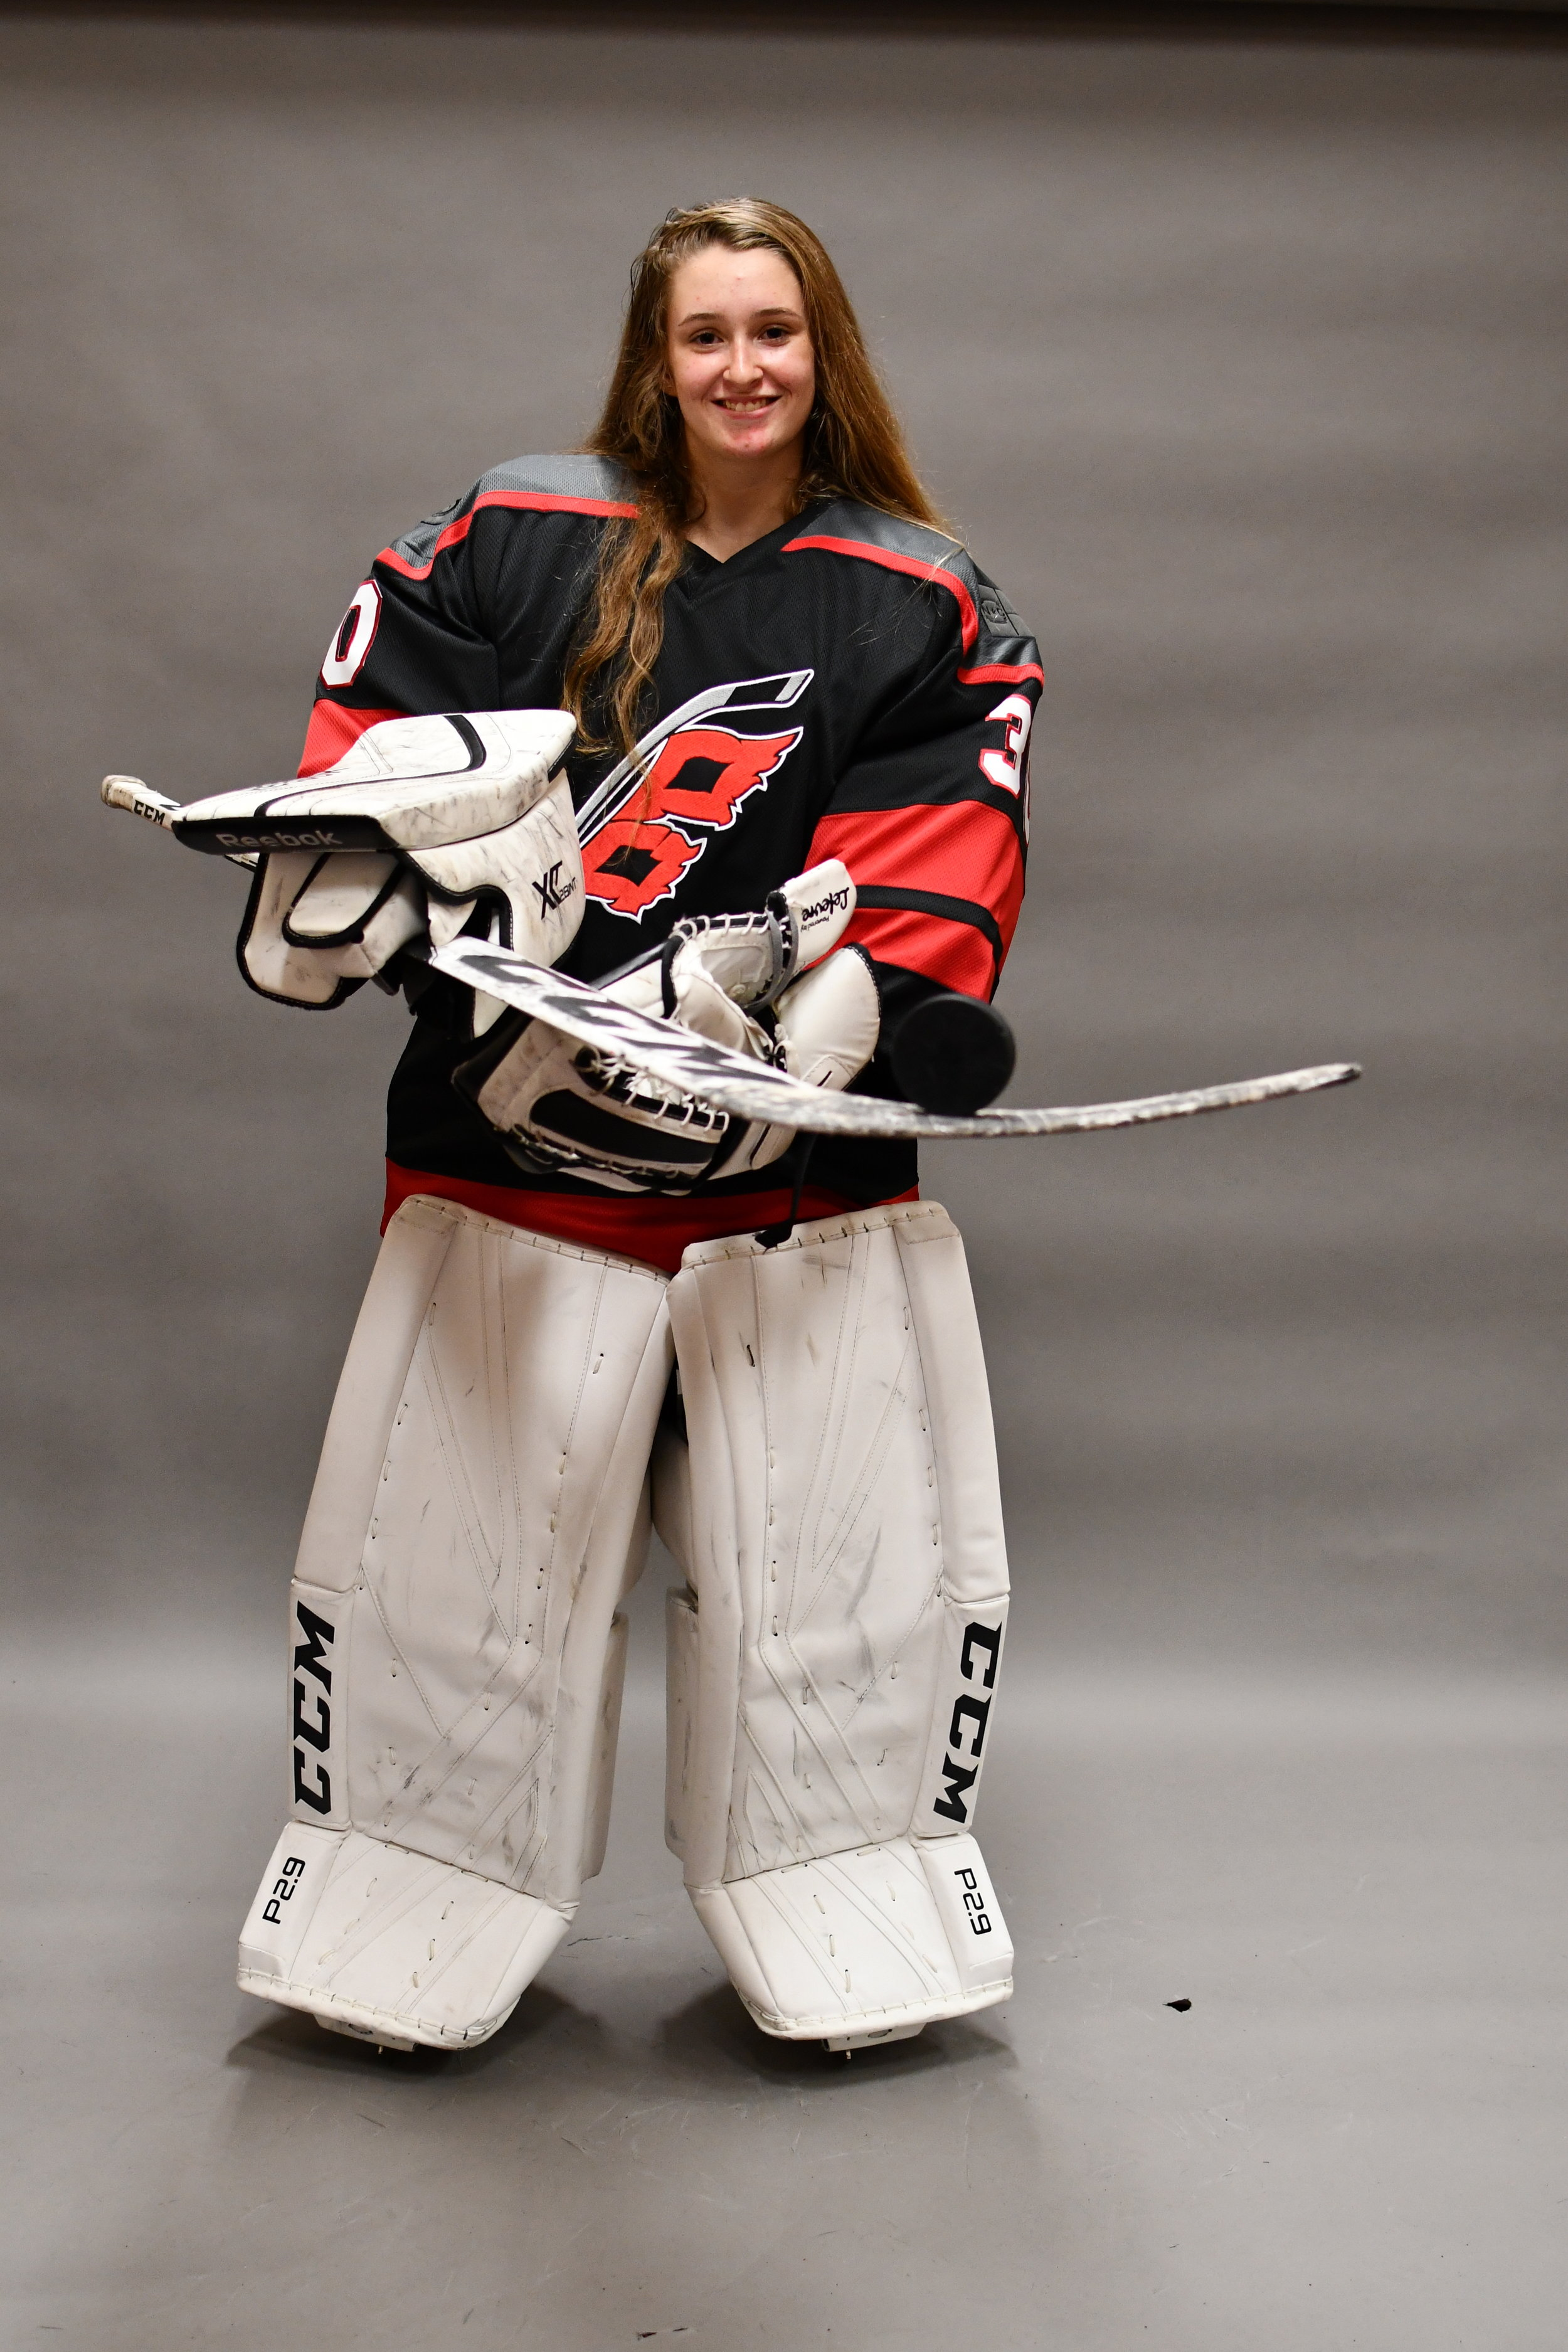 #30 Theresa Cleary